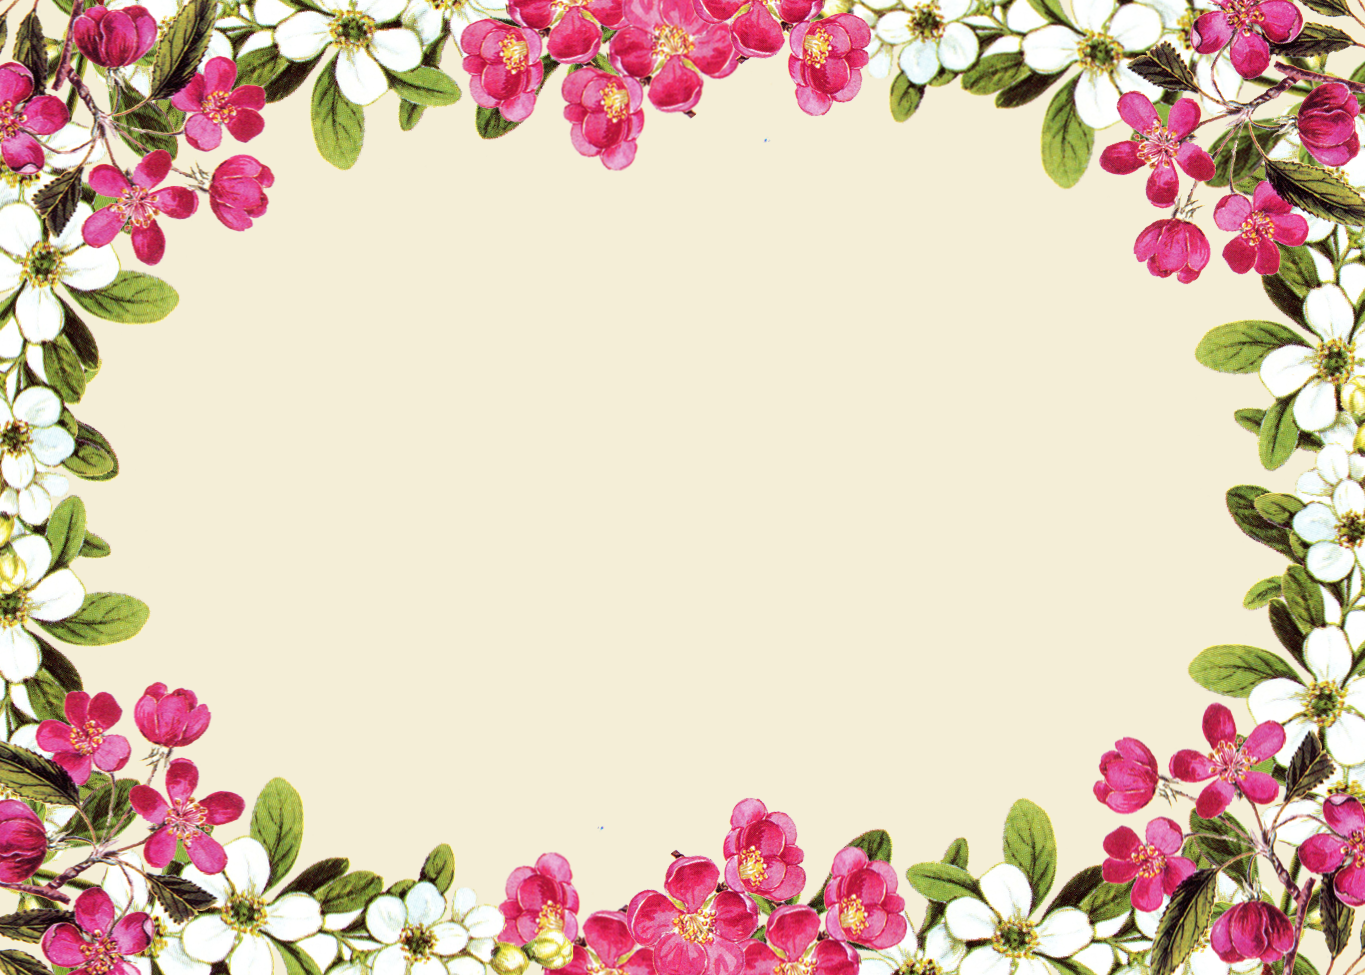 Free Digital Flower Frame Png In Vintage Design Blumenrahmen Freebies